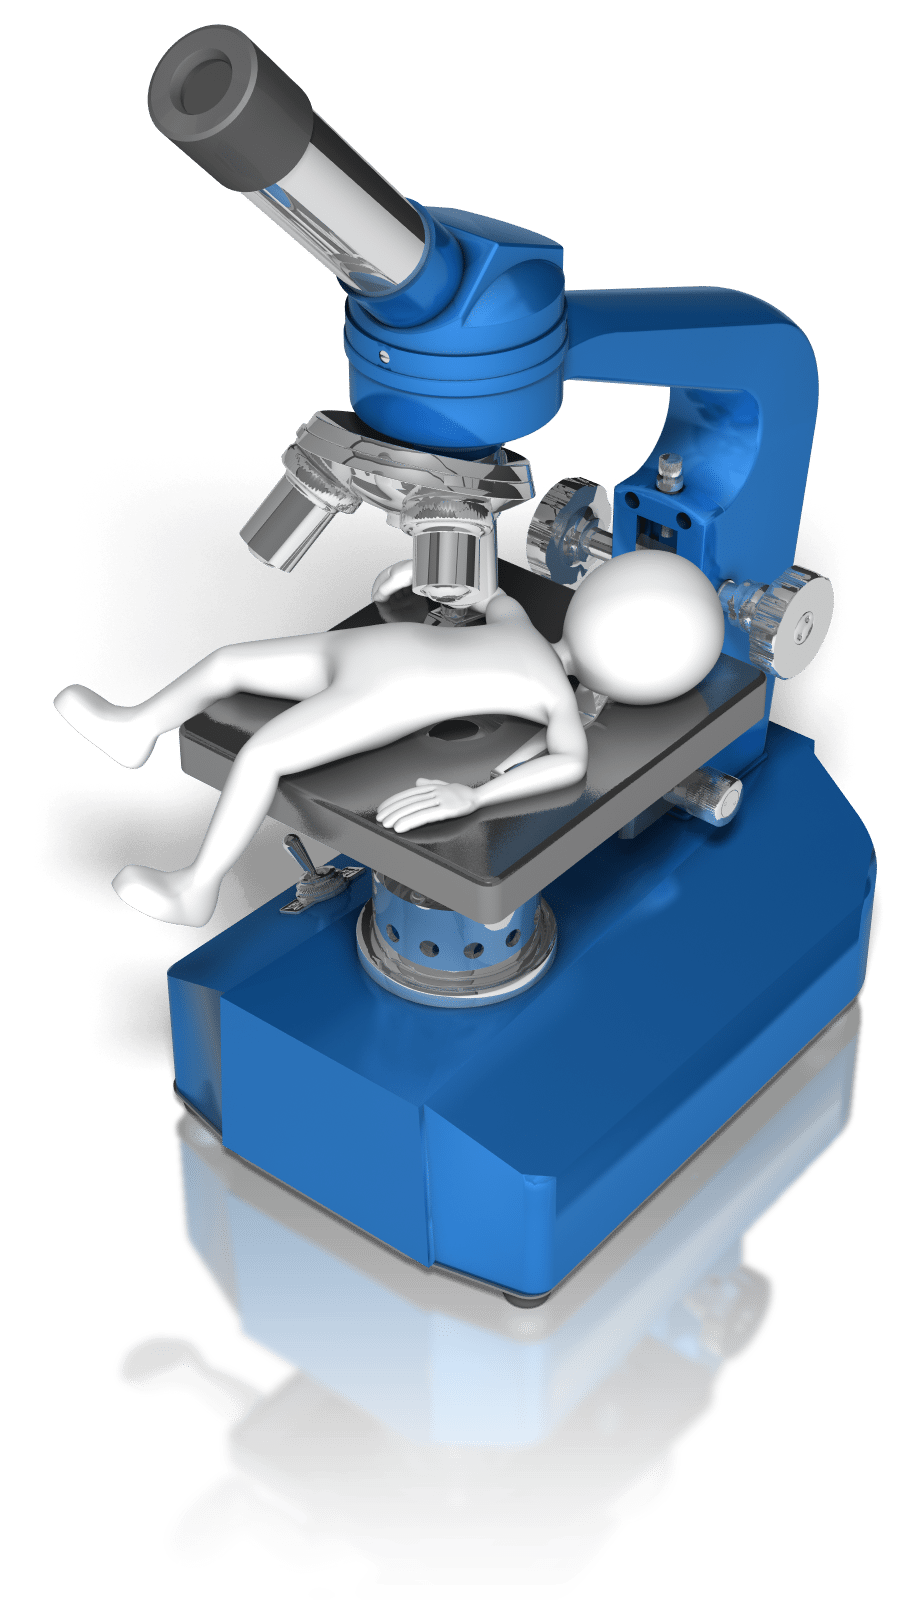 Detective clipart microscope. When towns lose their